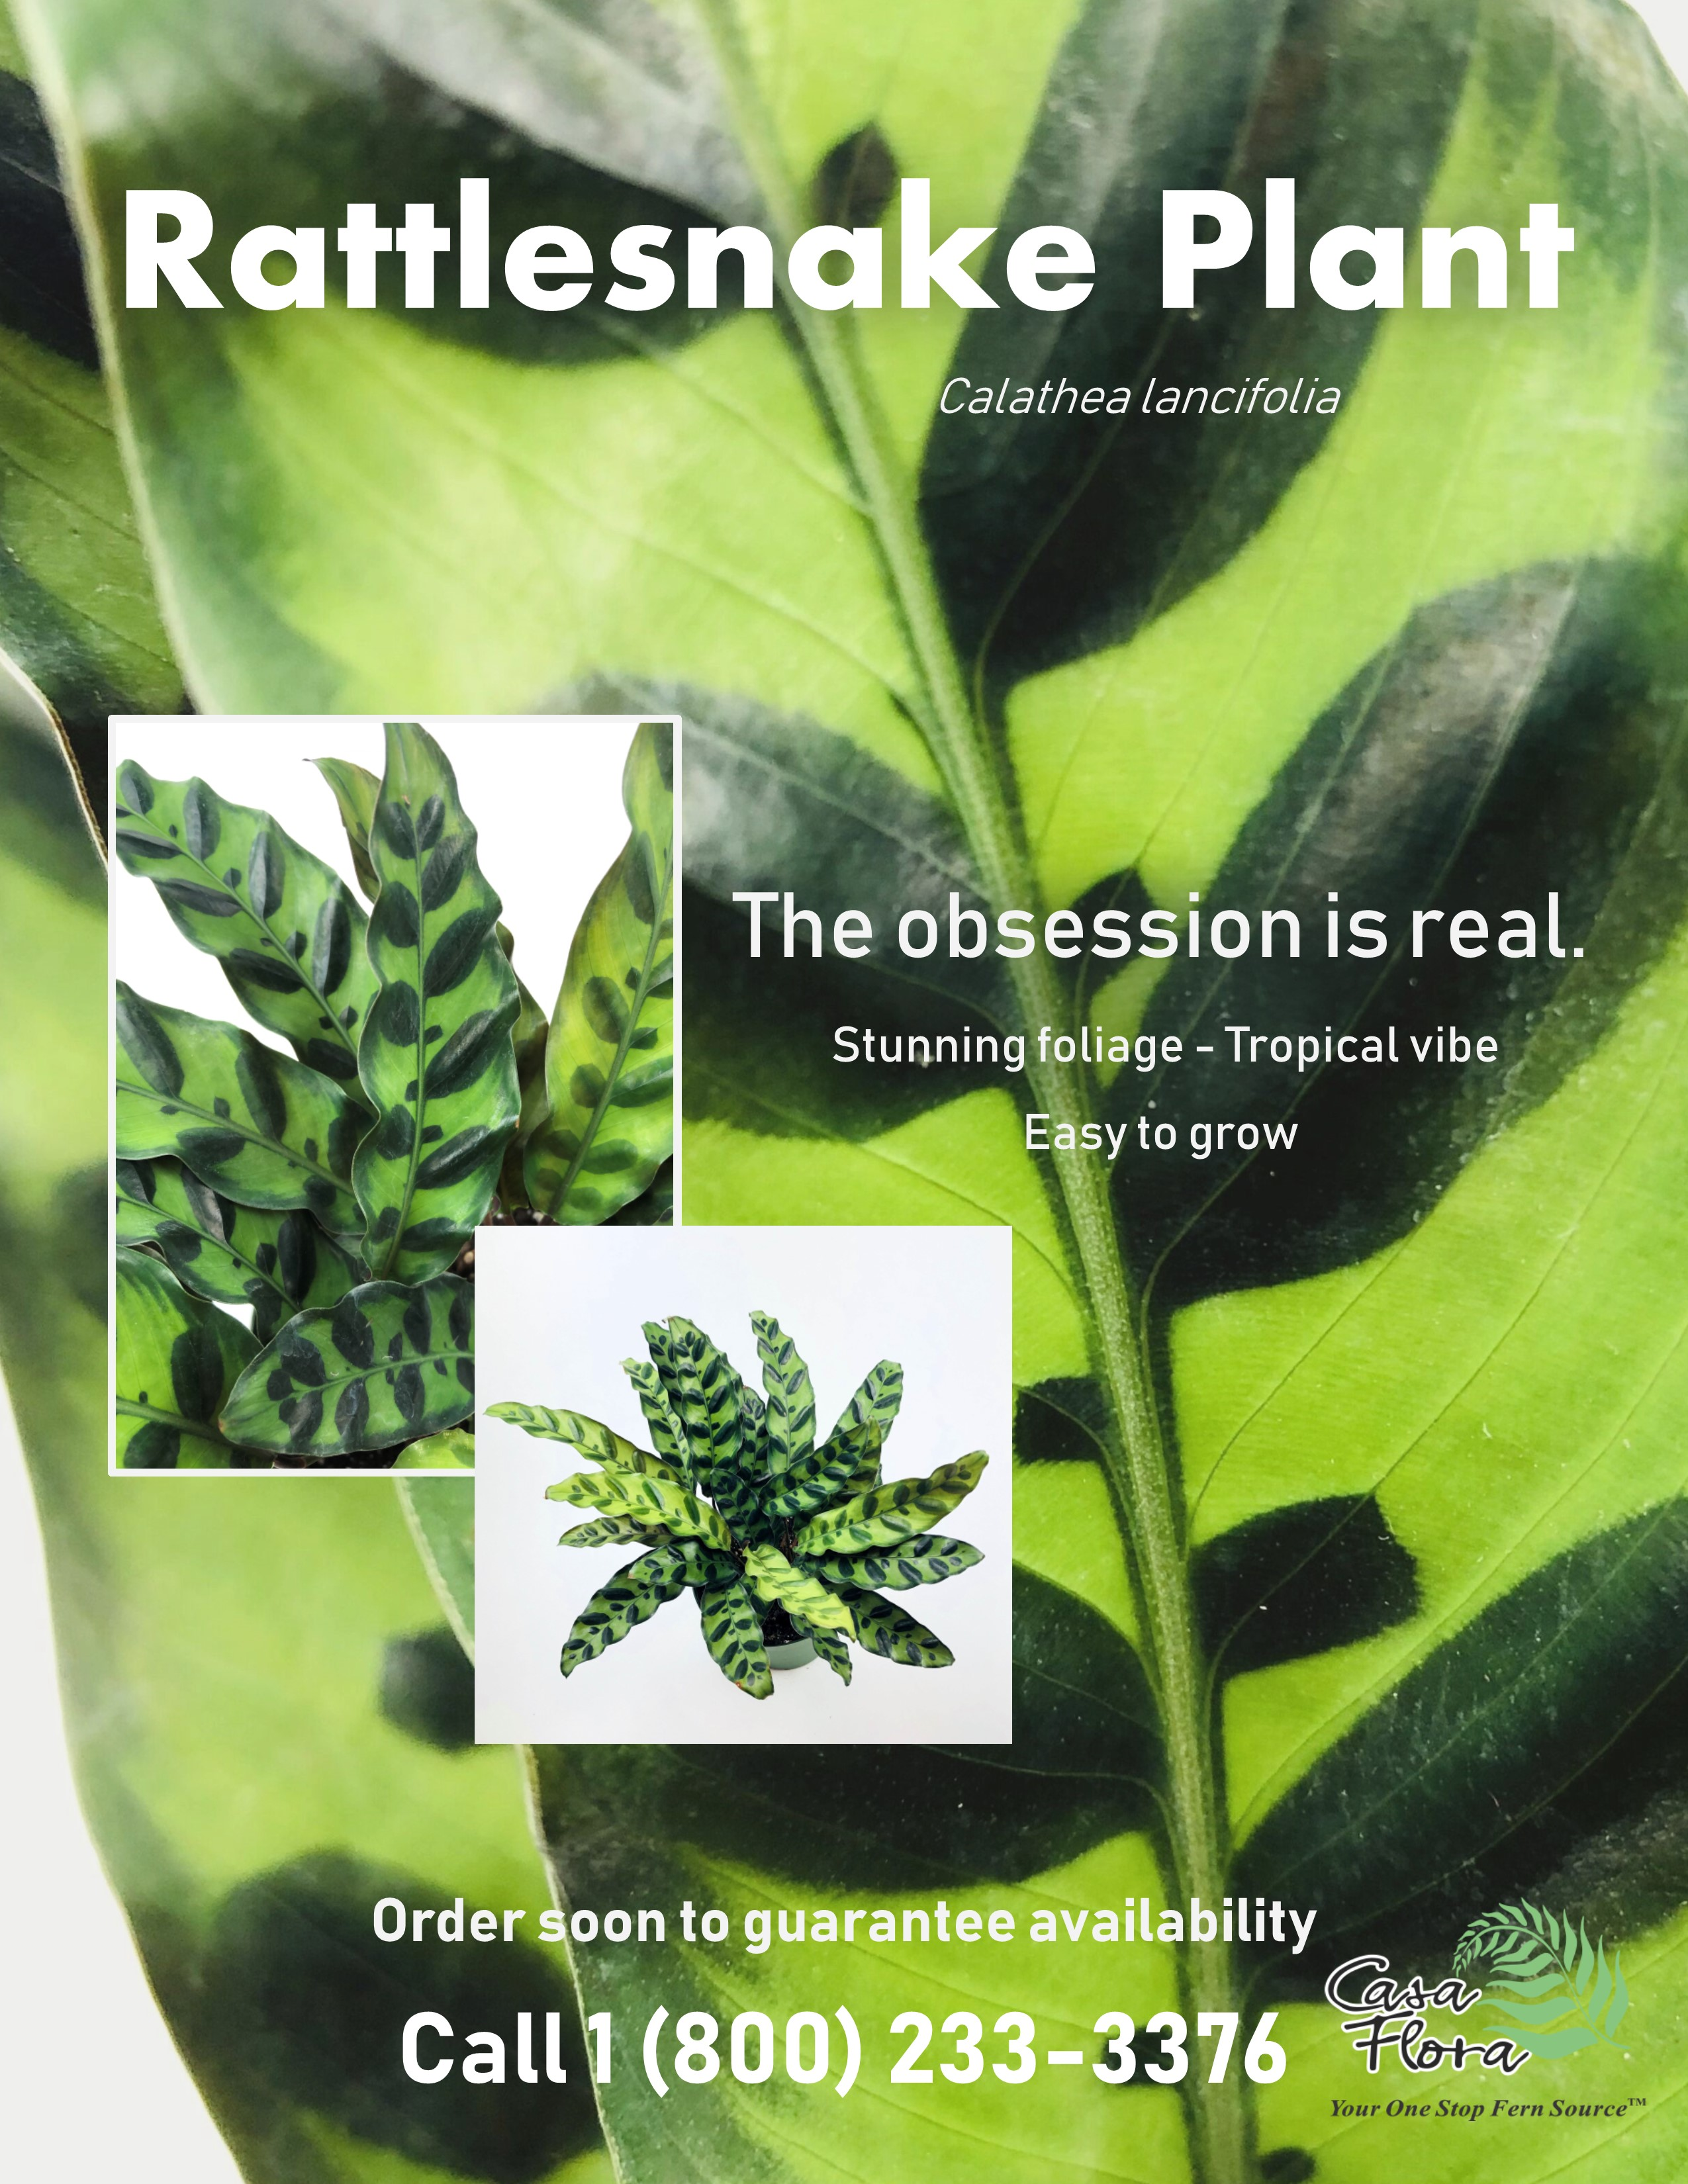 Flyer for Rattlesnake plant